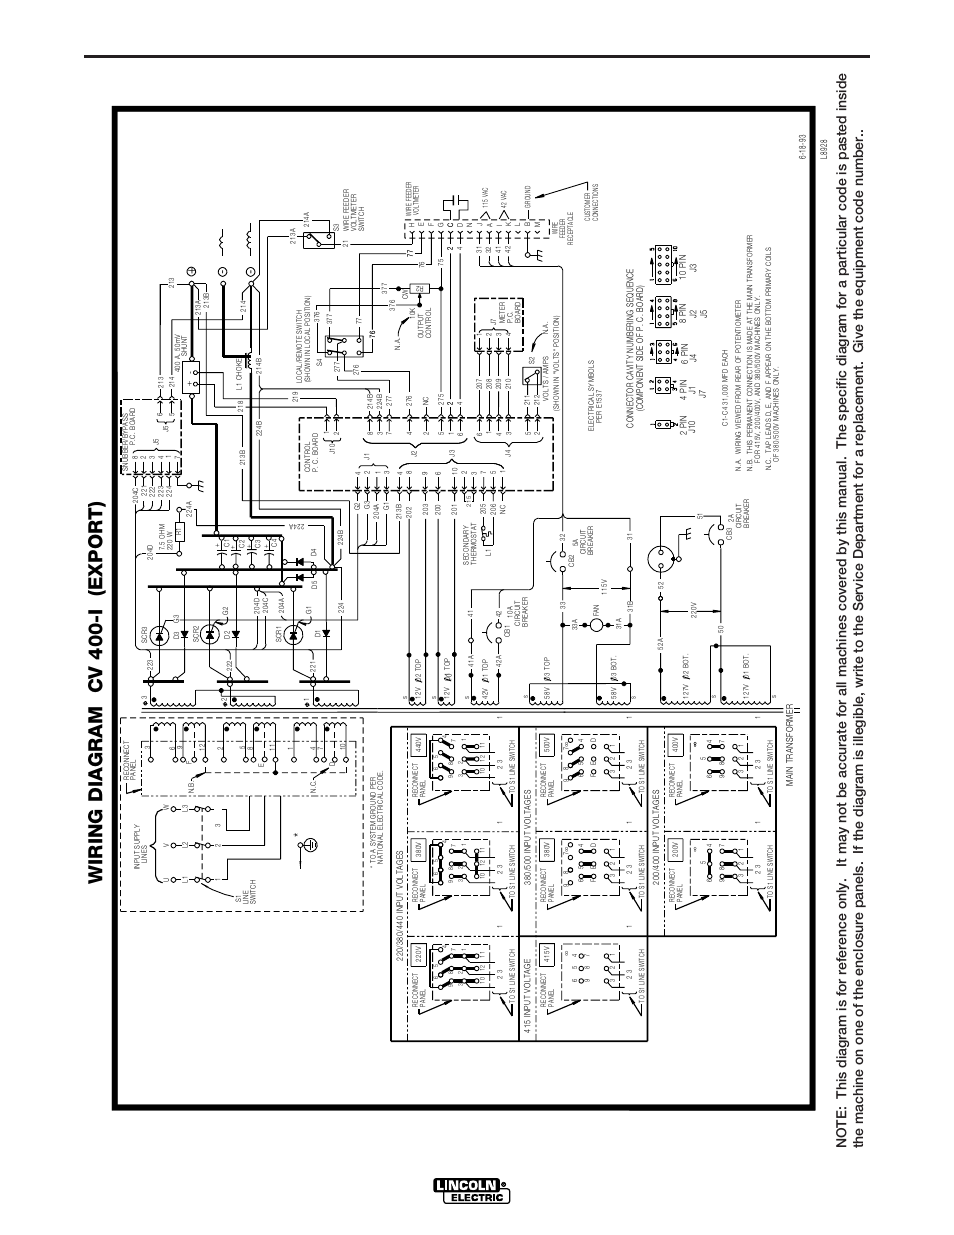 Lincoln Cv400 Wiring Diagram Schematics Diagrams 2000 Porsche Boxster Engine Cv 400 I Export Rh Manualsdir Com Navigator 1998